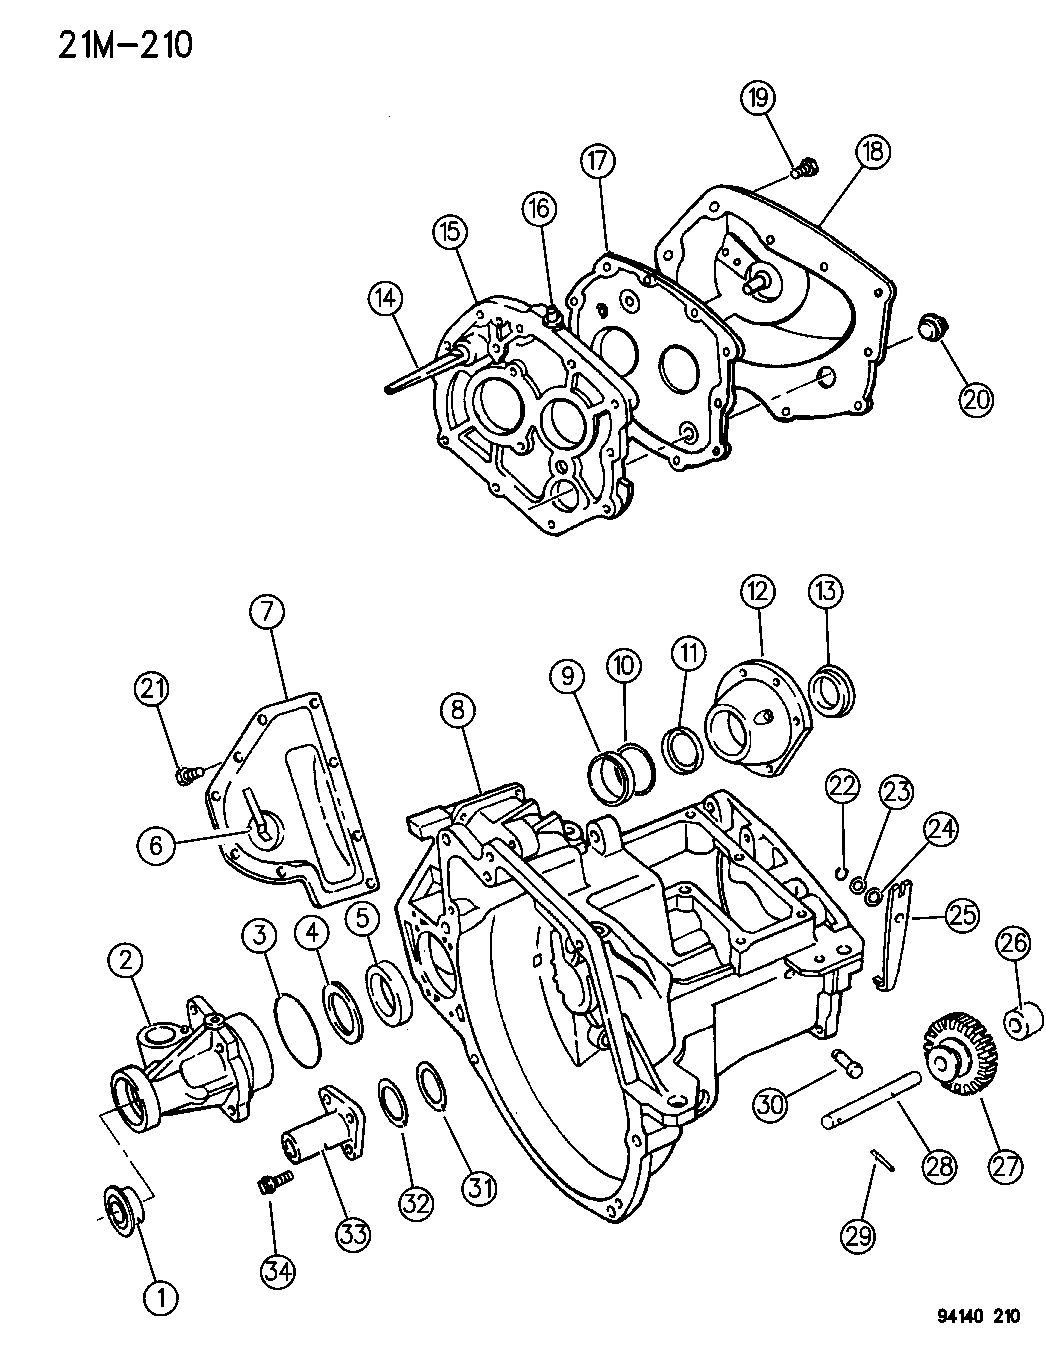 4531540 Genuine Chrysler Gear Trans Rev Idler 1994 Town Country Wiring Diagram Case Transaxle Related Parts